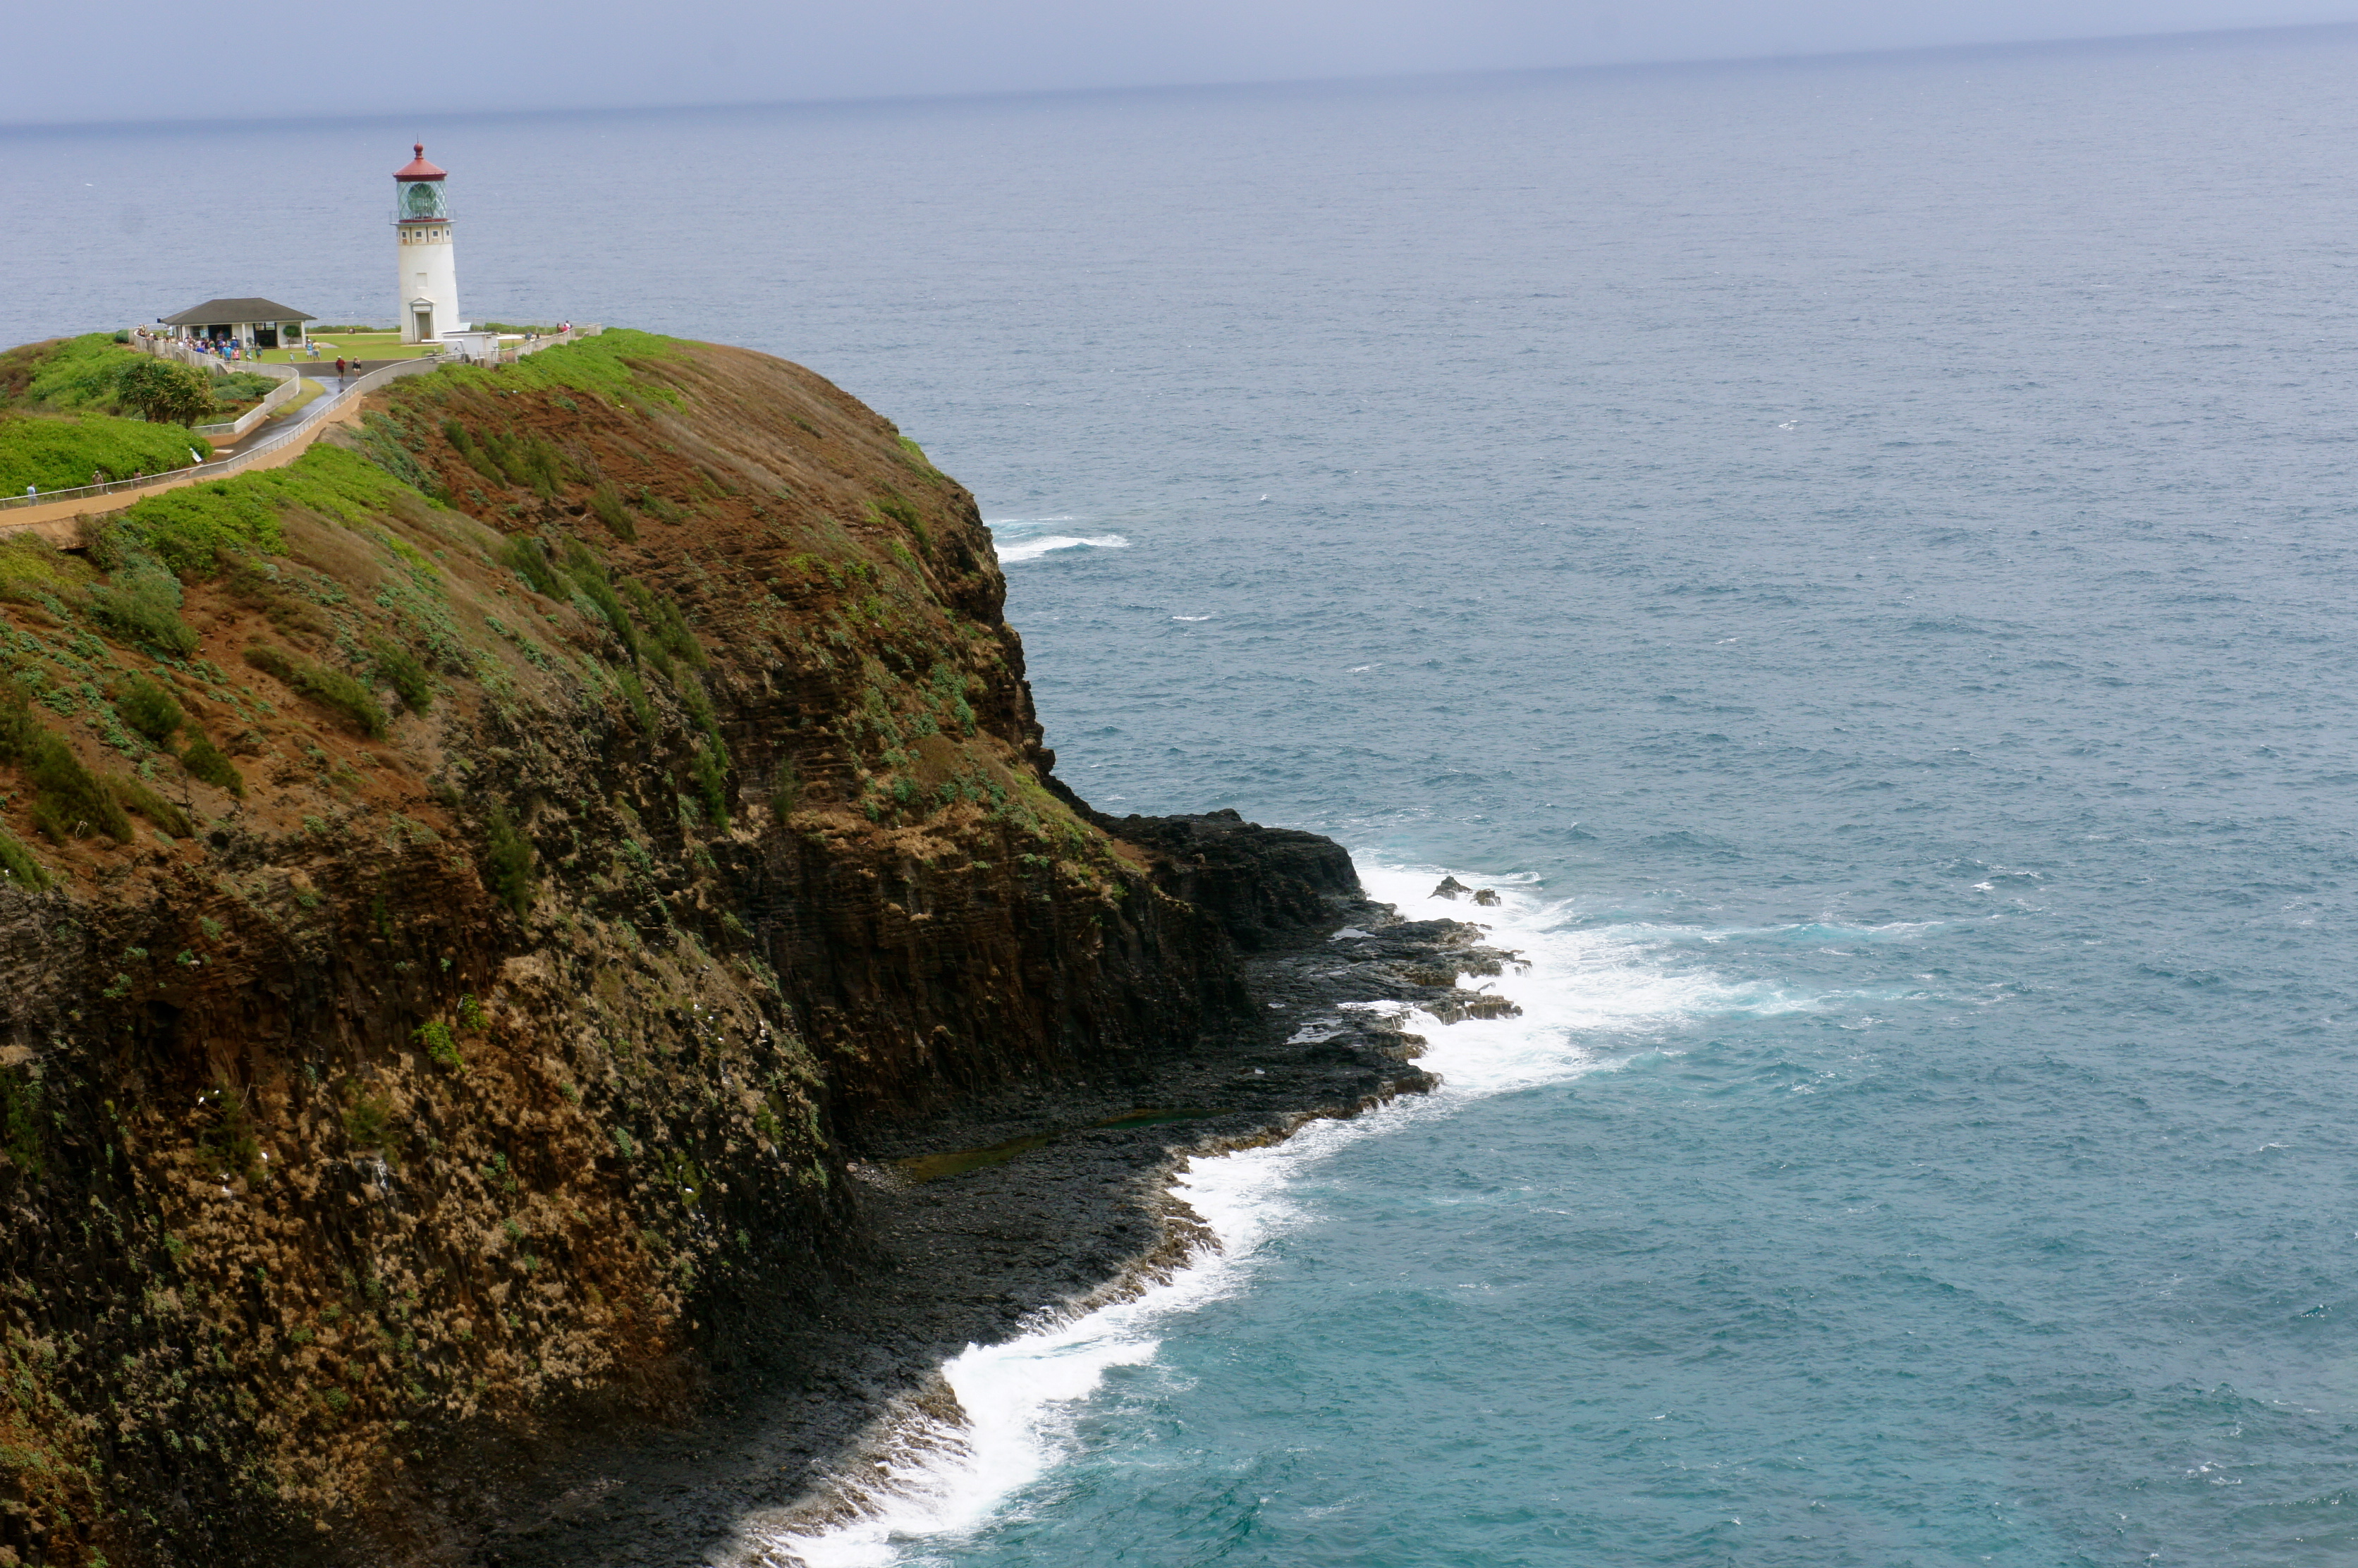 Lighthouse – Kauai